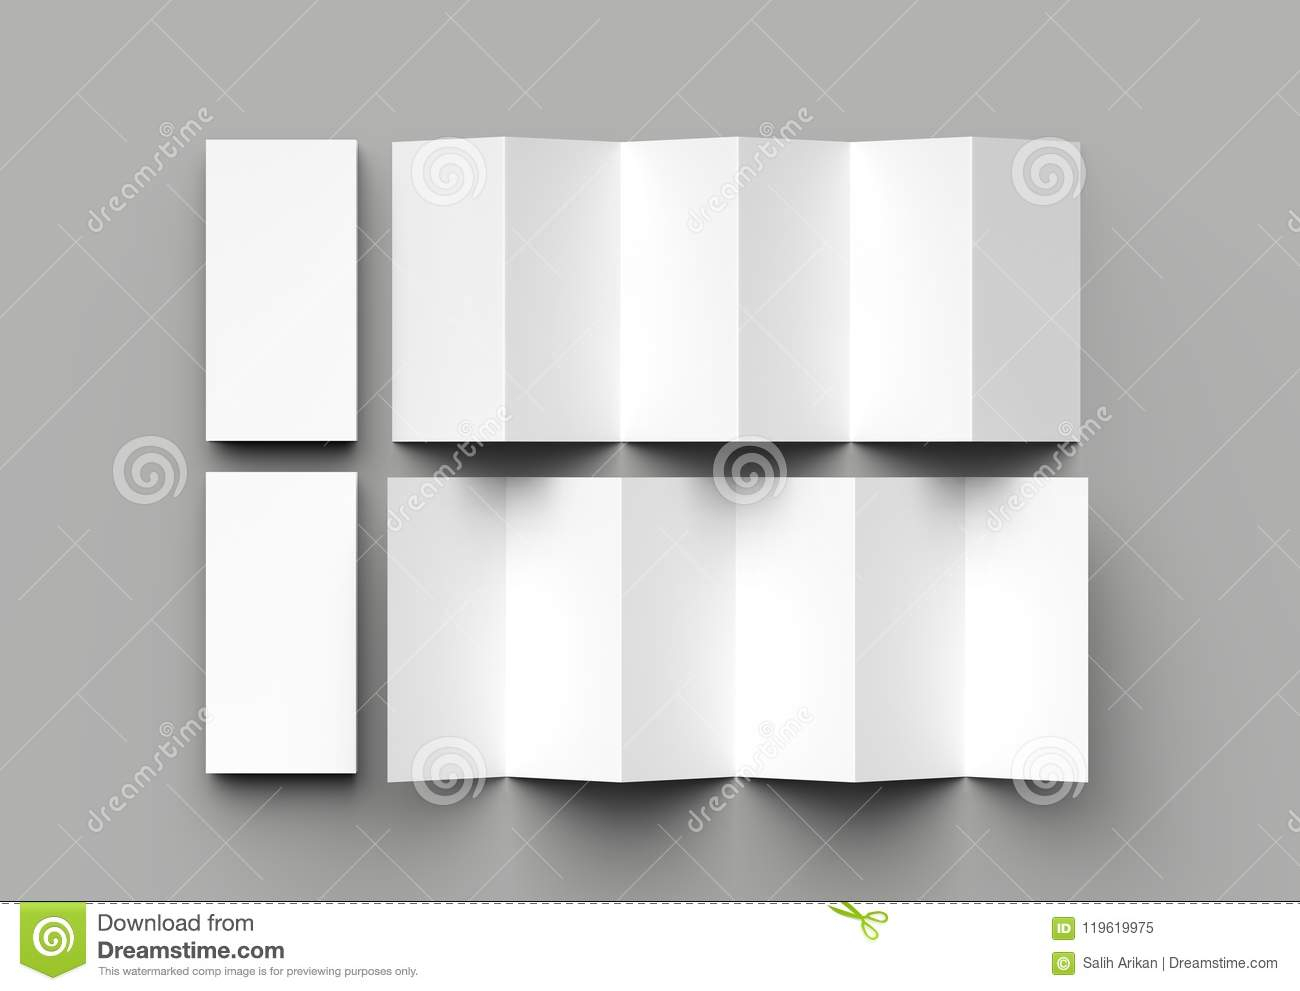 12 Page Leaflet, 6 Panel Accordion Fold - Z Fold Vertical Within 12 Page Brochure Template